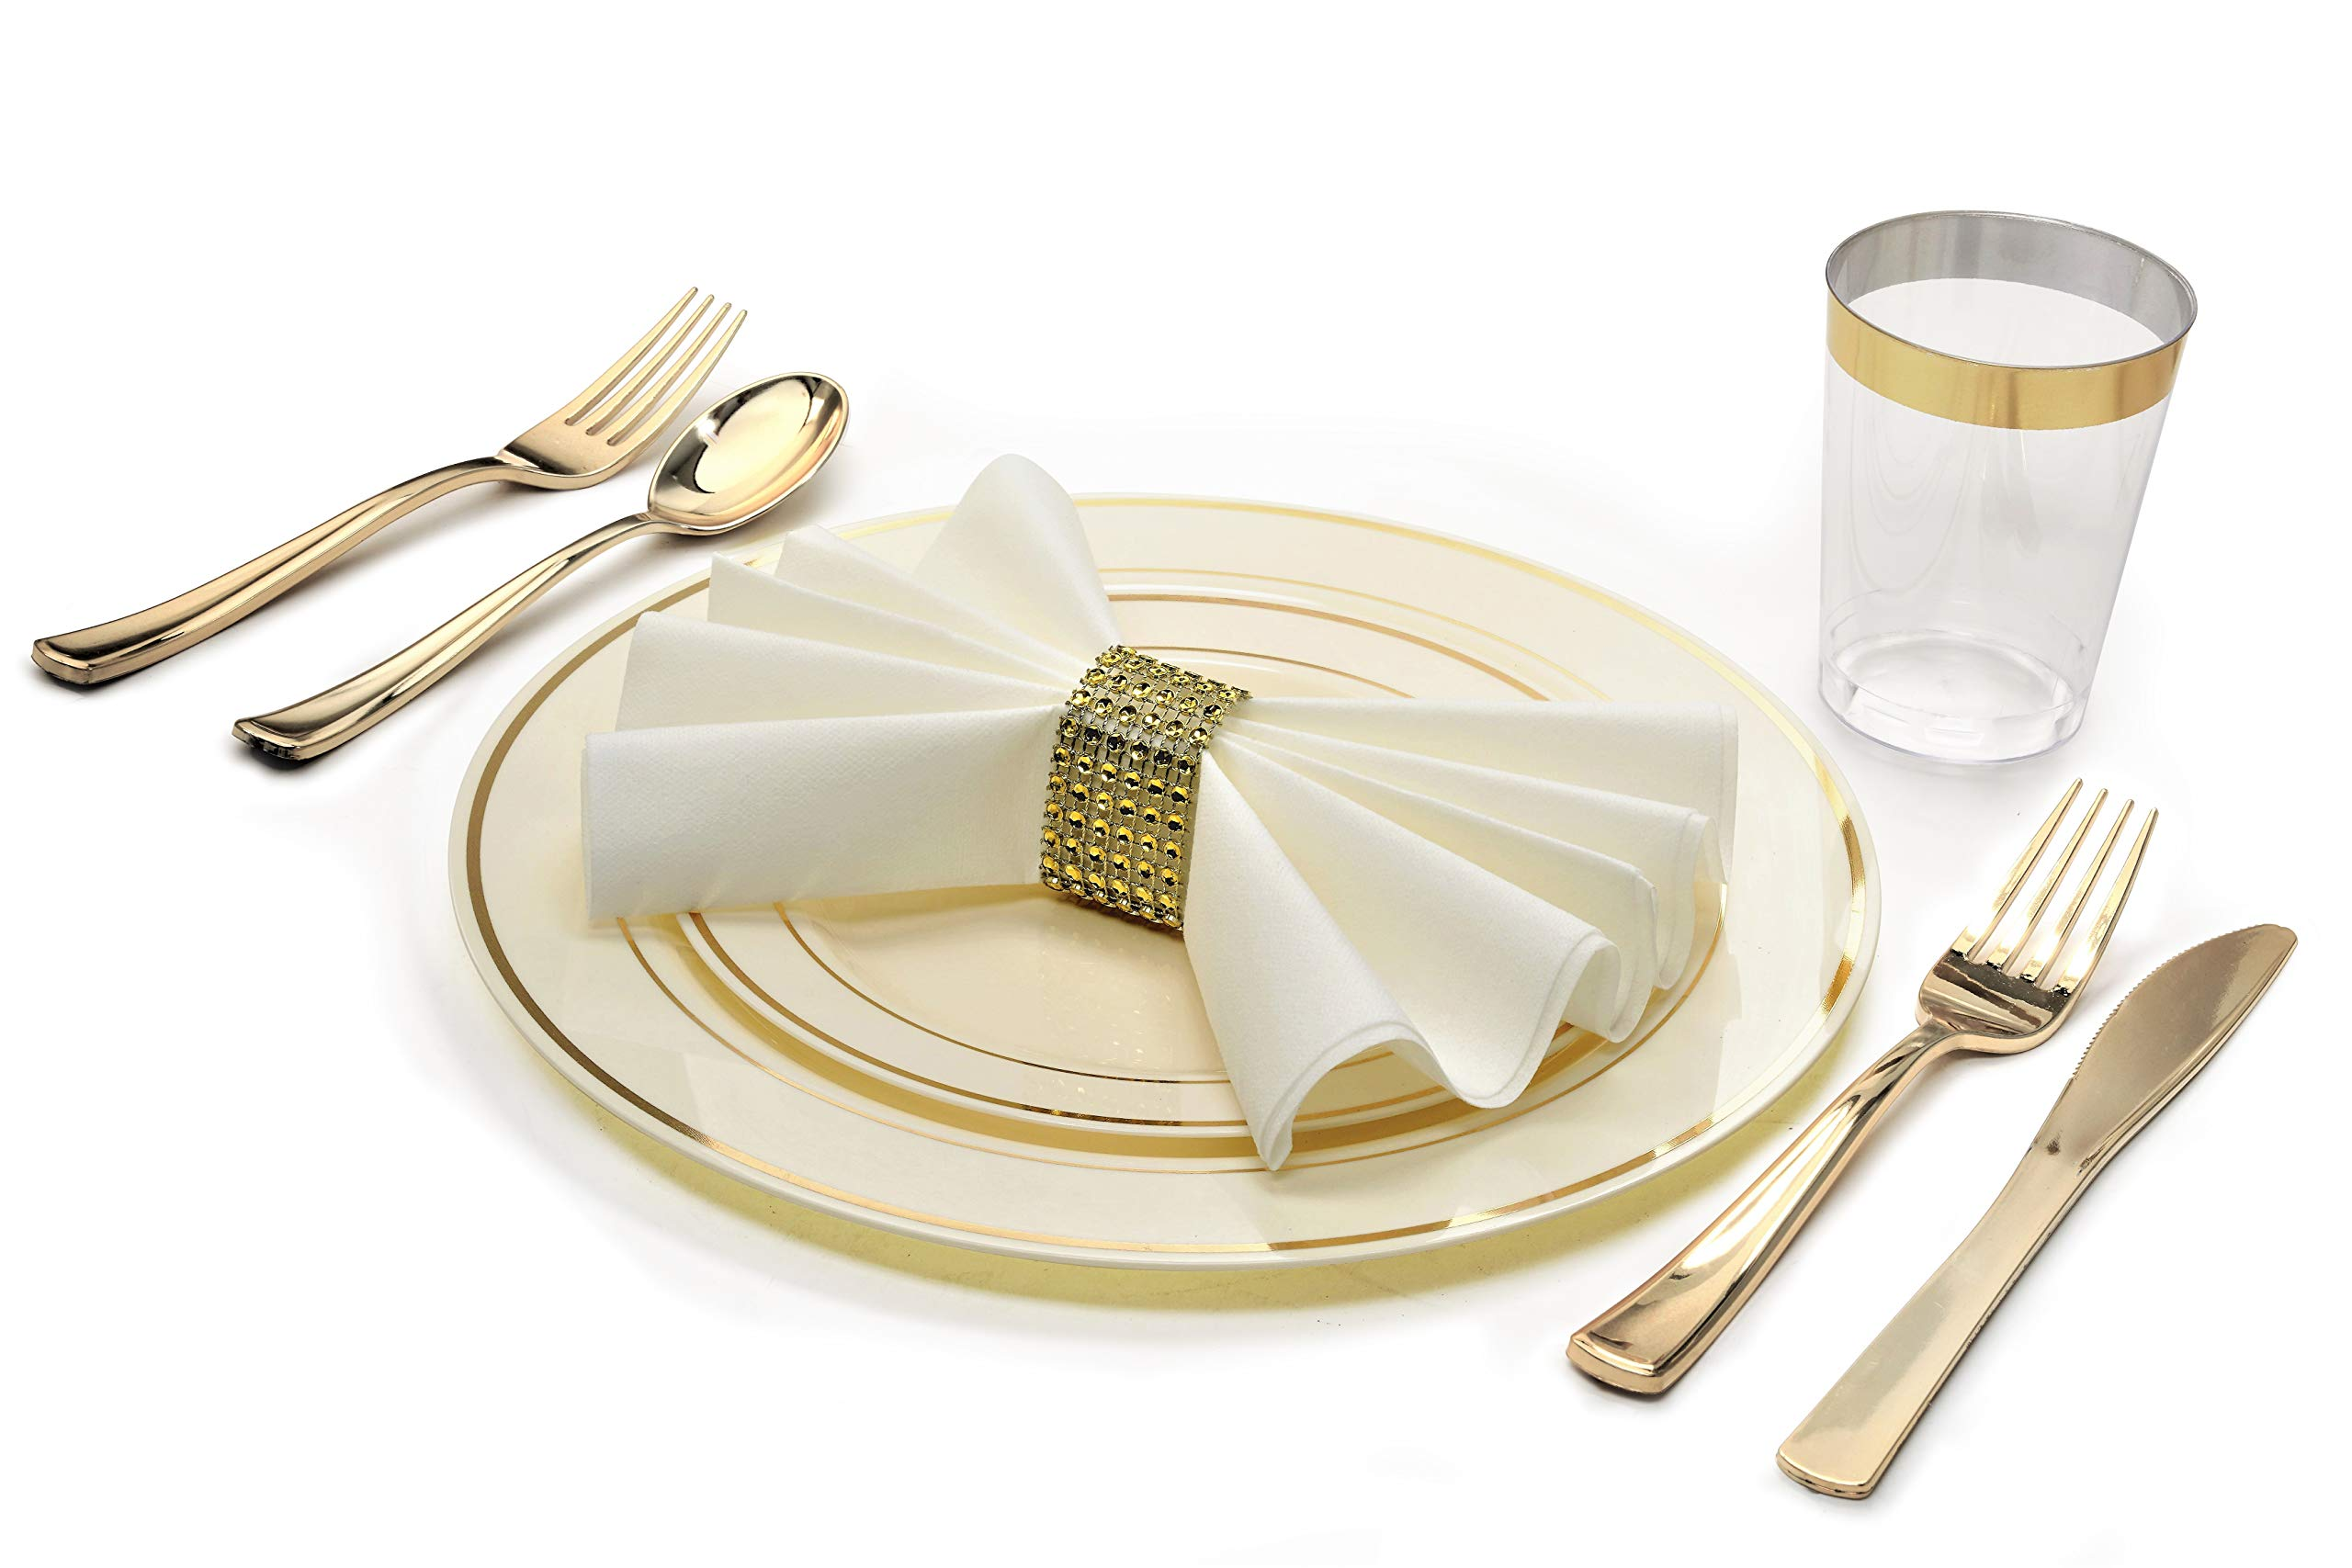 '' OCCASIONS'' 1080 Piece / 120 Guest - Full Tableware Set - Wedding Disposable Plastic Plates, Plastic Silverware, Gold Rimmed Tumblers & Linen Feel Napkins w/napkin Rings (Combo C, Ivory/Gold)